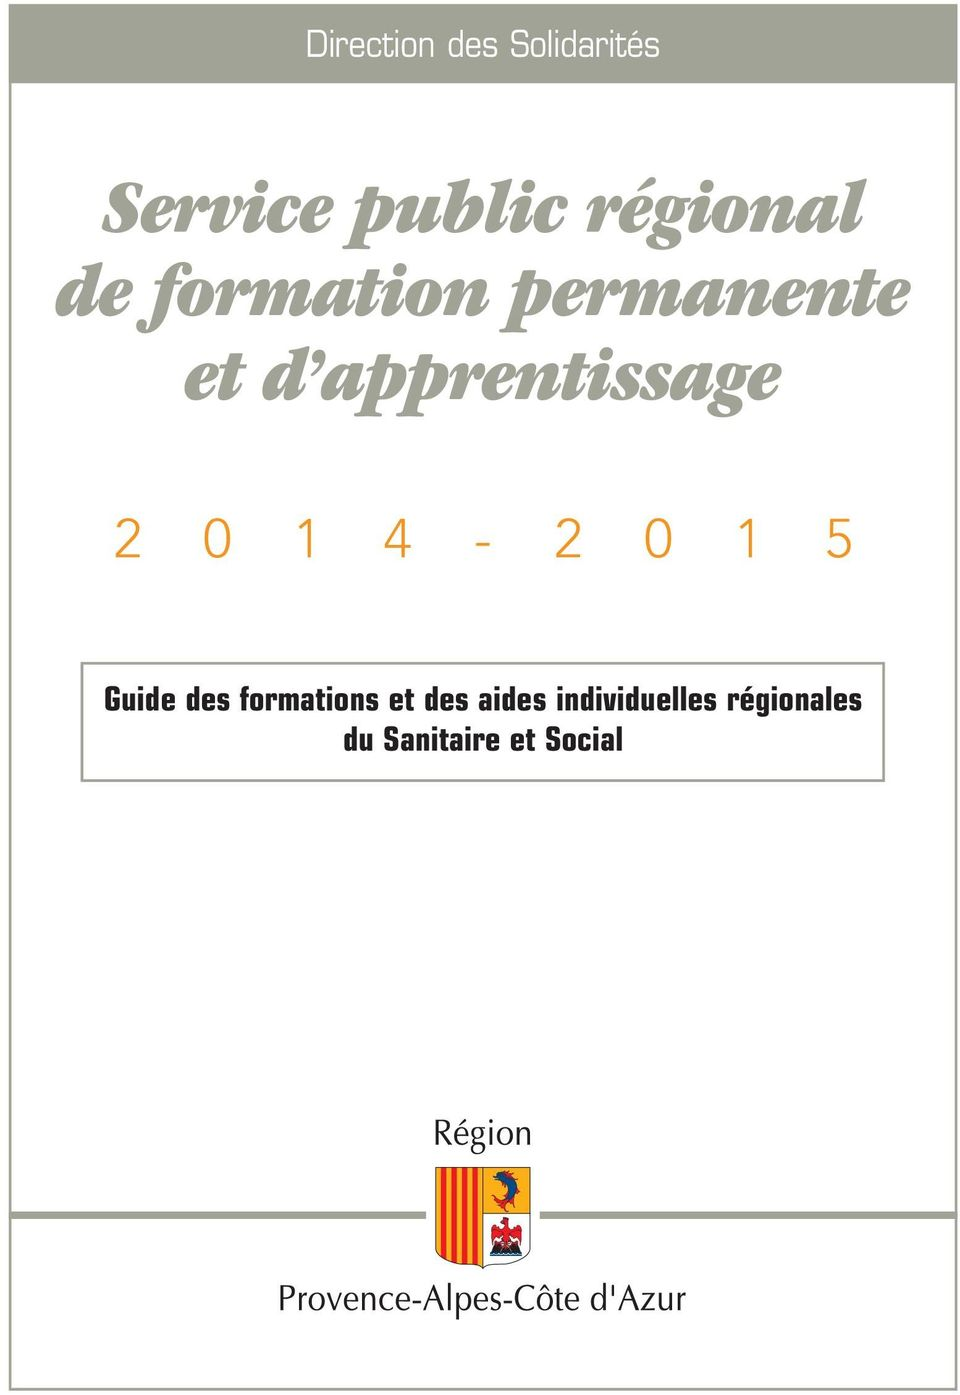 apprentissage 2 0 1 4-2 0 1 5 Guide des